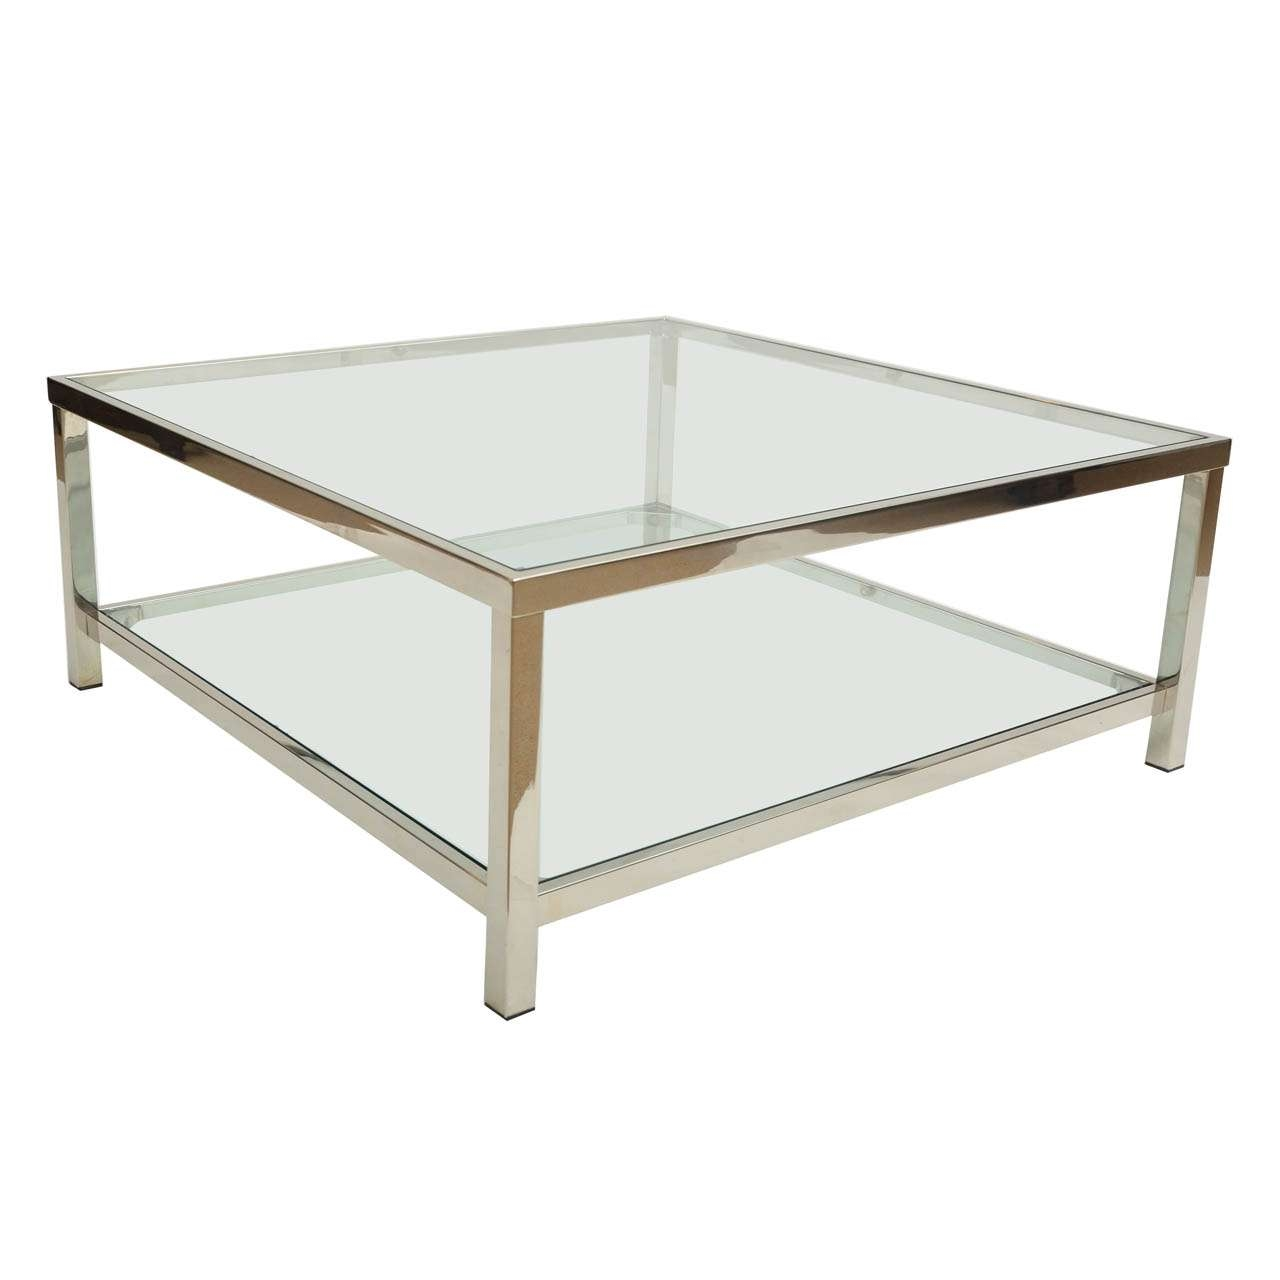 All You Need To Know About Glass And Chrome Coffee Tables For Current Chrome And Glass Coffee Tables (View 2 of 20)